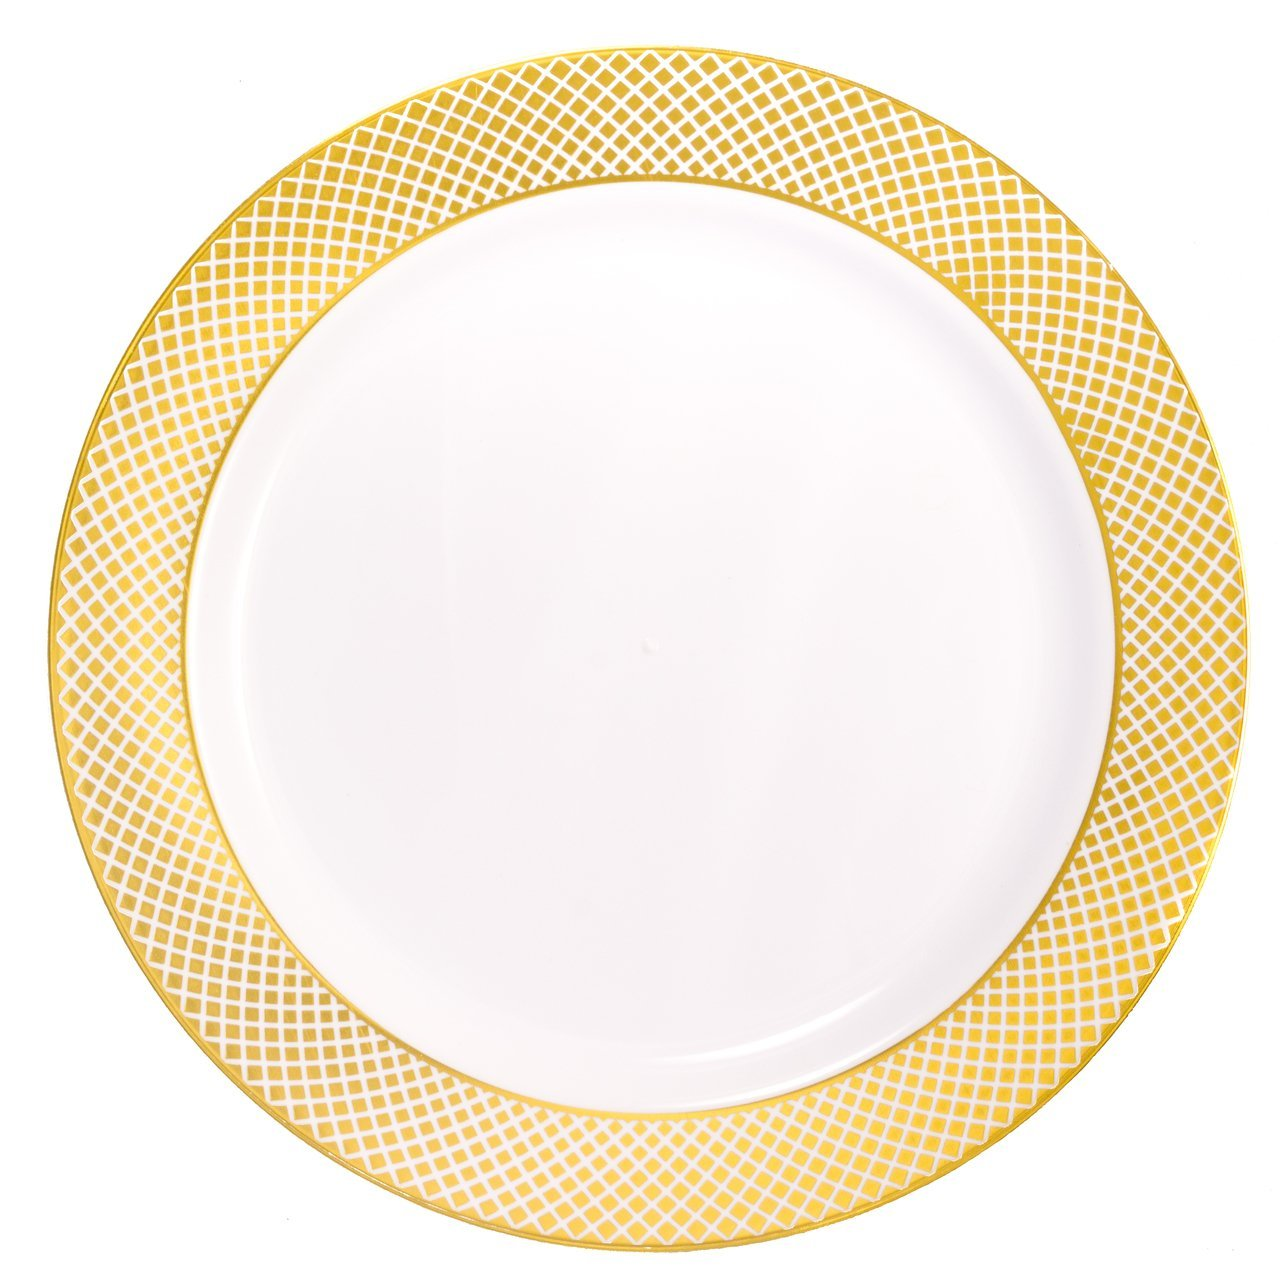 "Kaya Collection - Disposable White with Gold Diamond Rim Plastic Round 10.25"" Dinner Plates (20 Plates)"